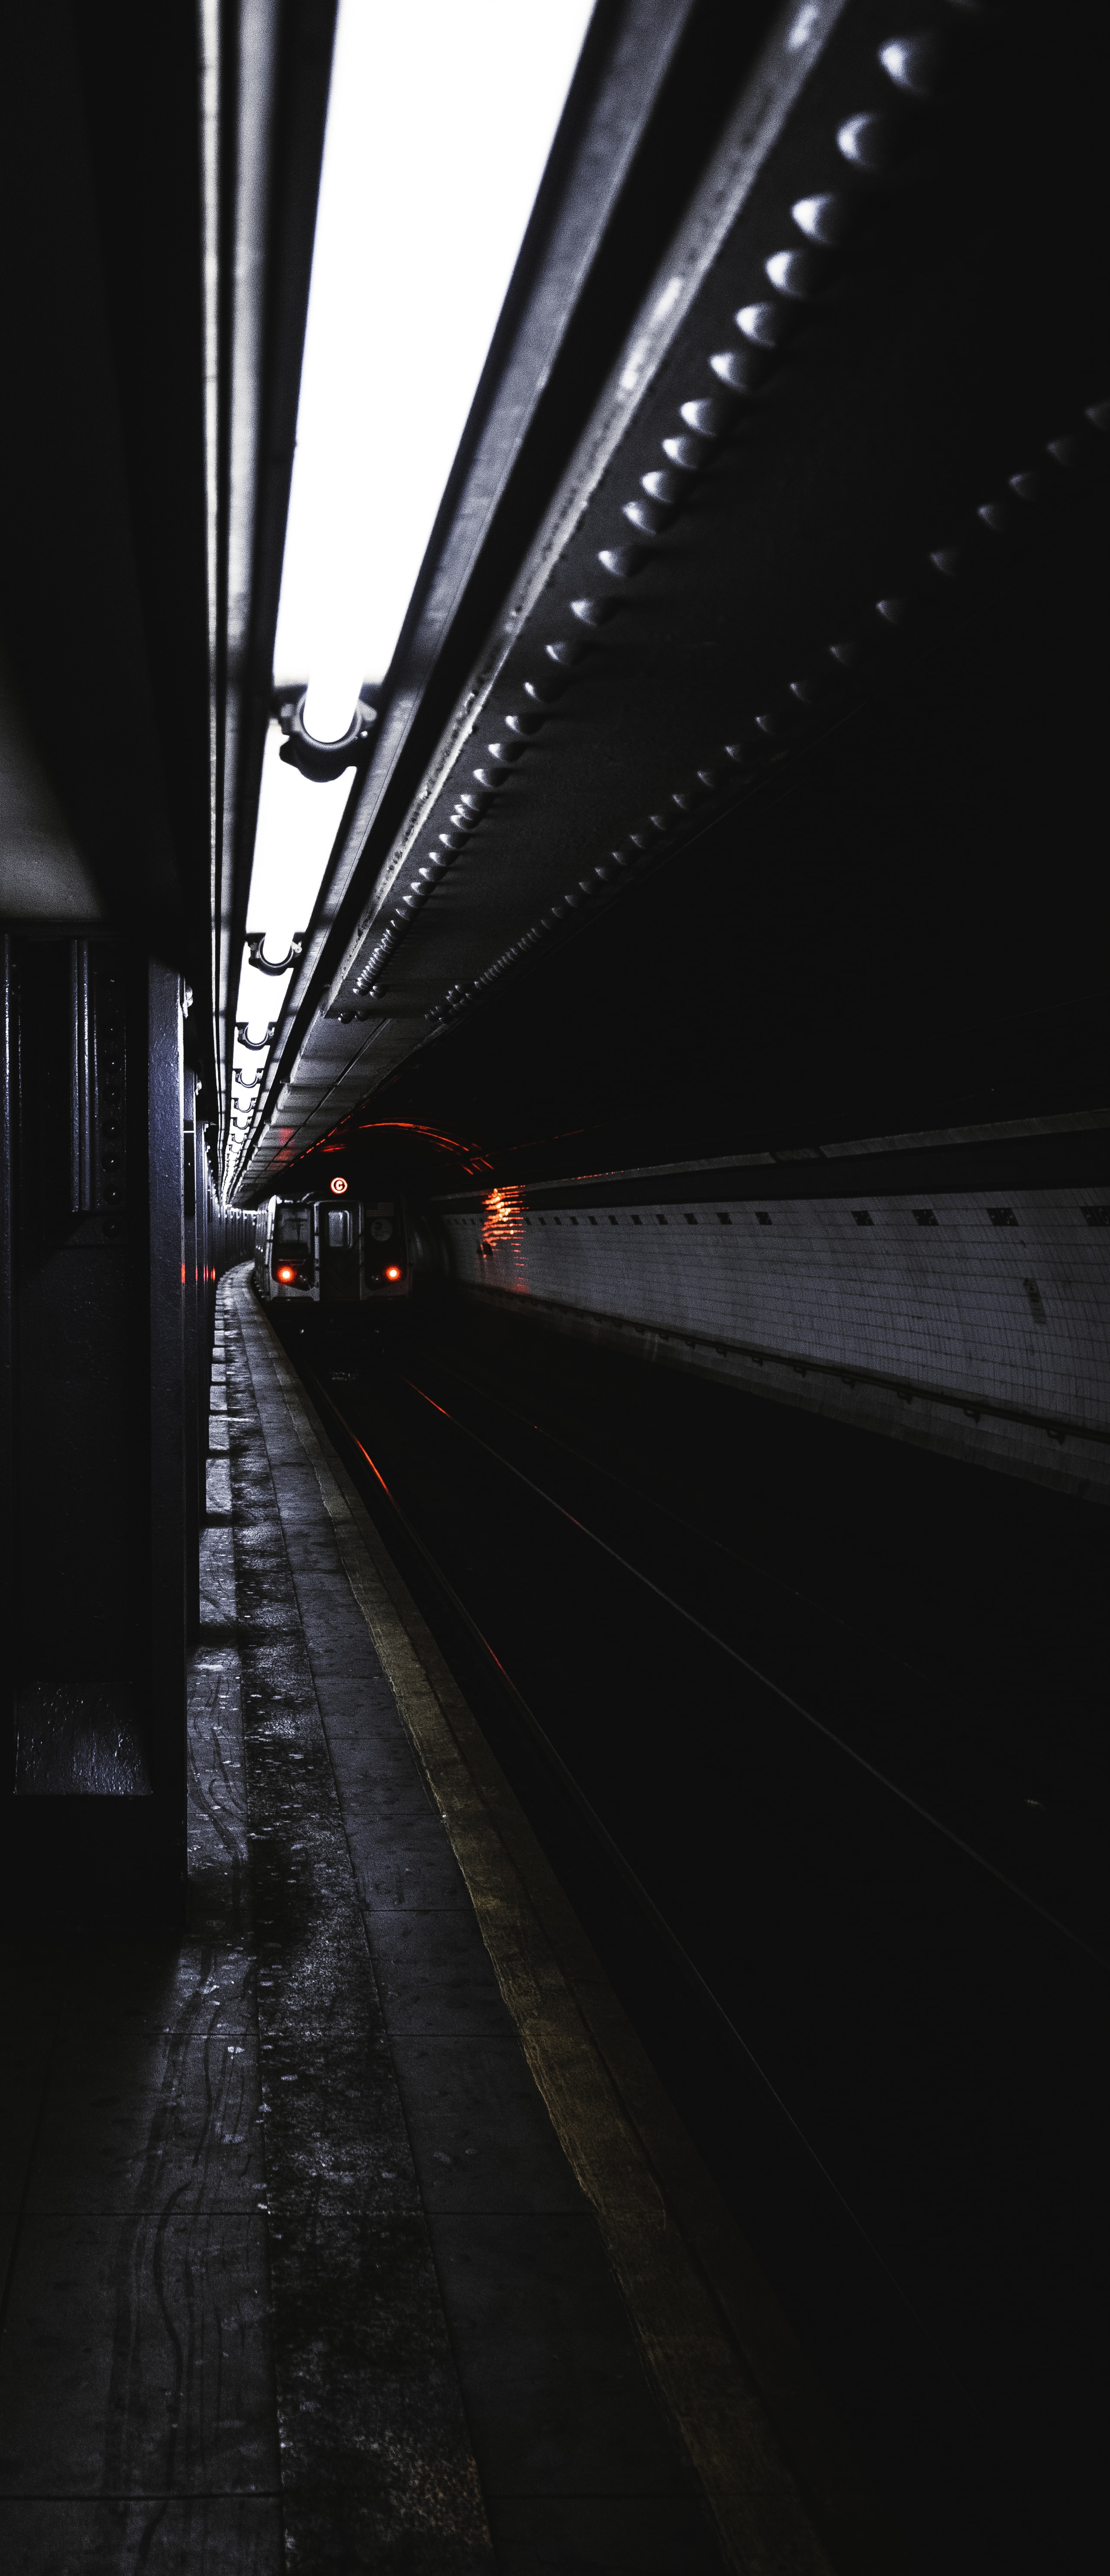 train passing on tunnel